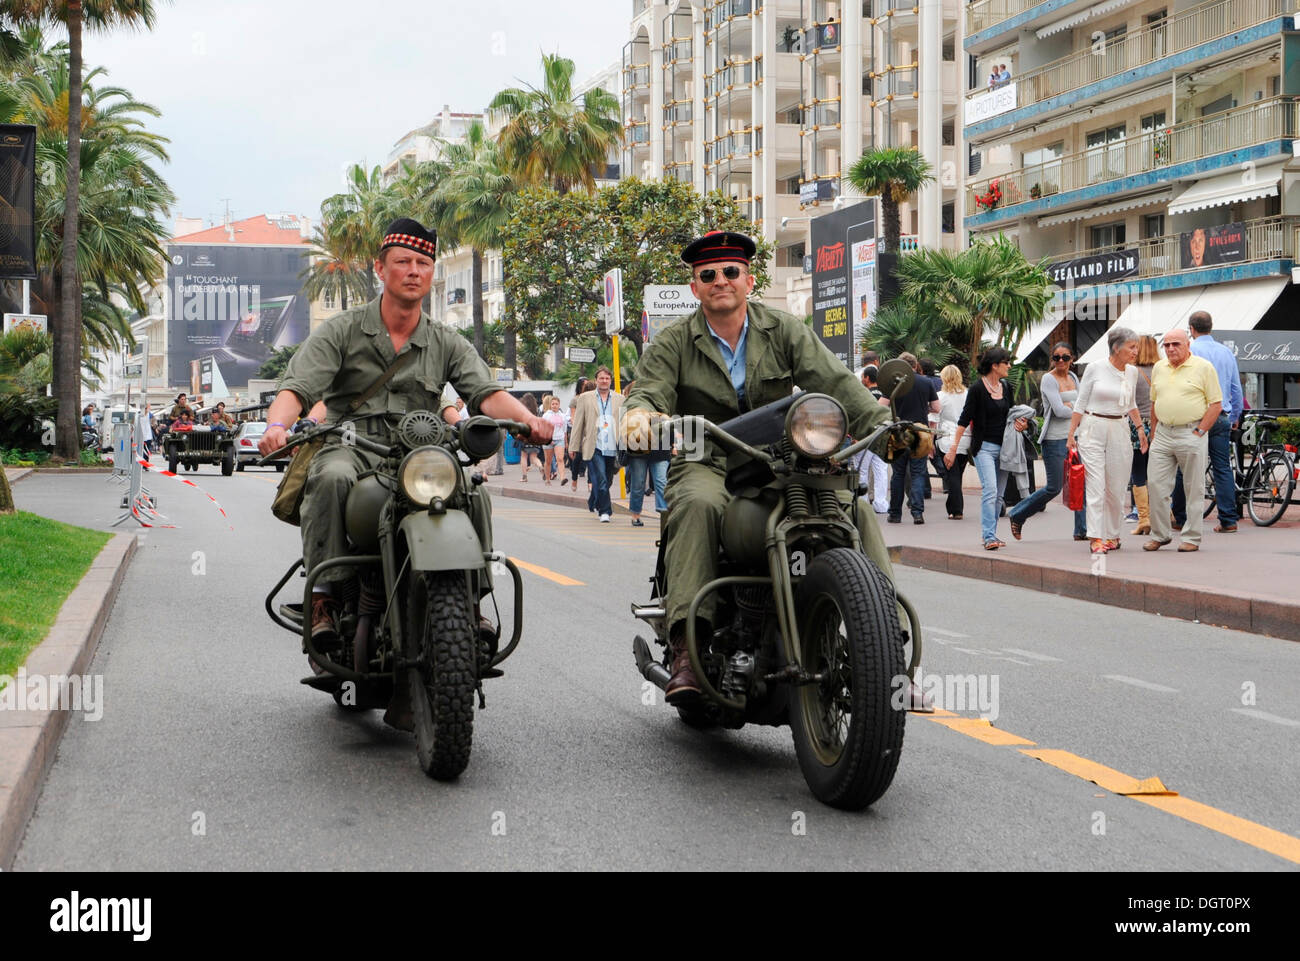 Biker meeting of army fans from France on the Croisette in Cannes, Cote d'Azur, France, Europe - Stock Image